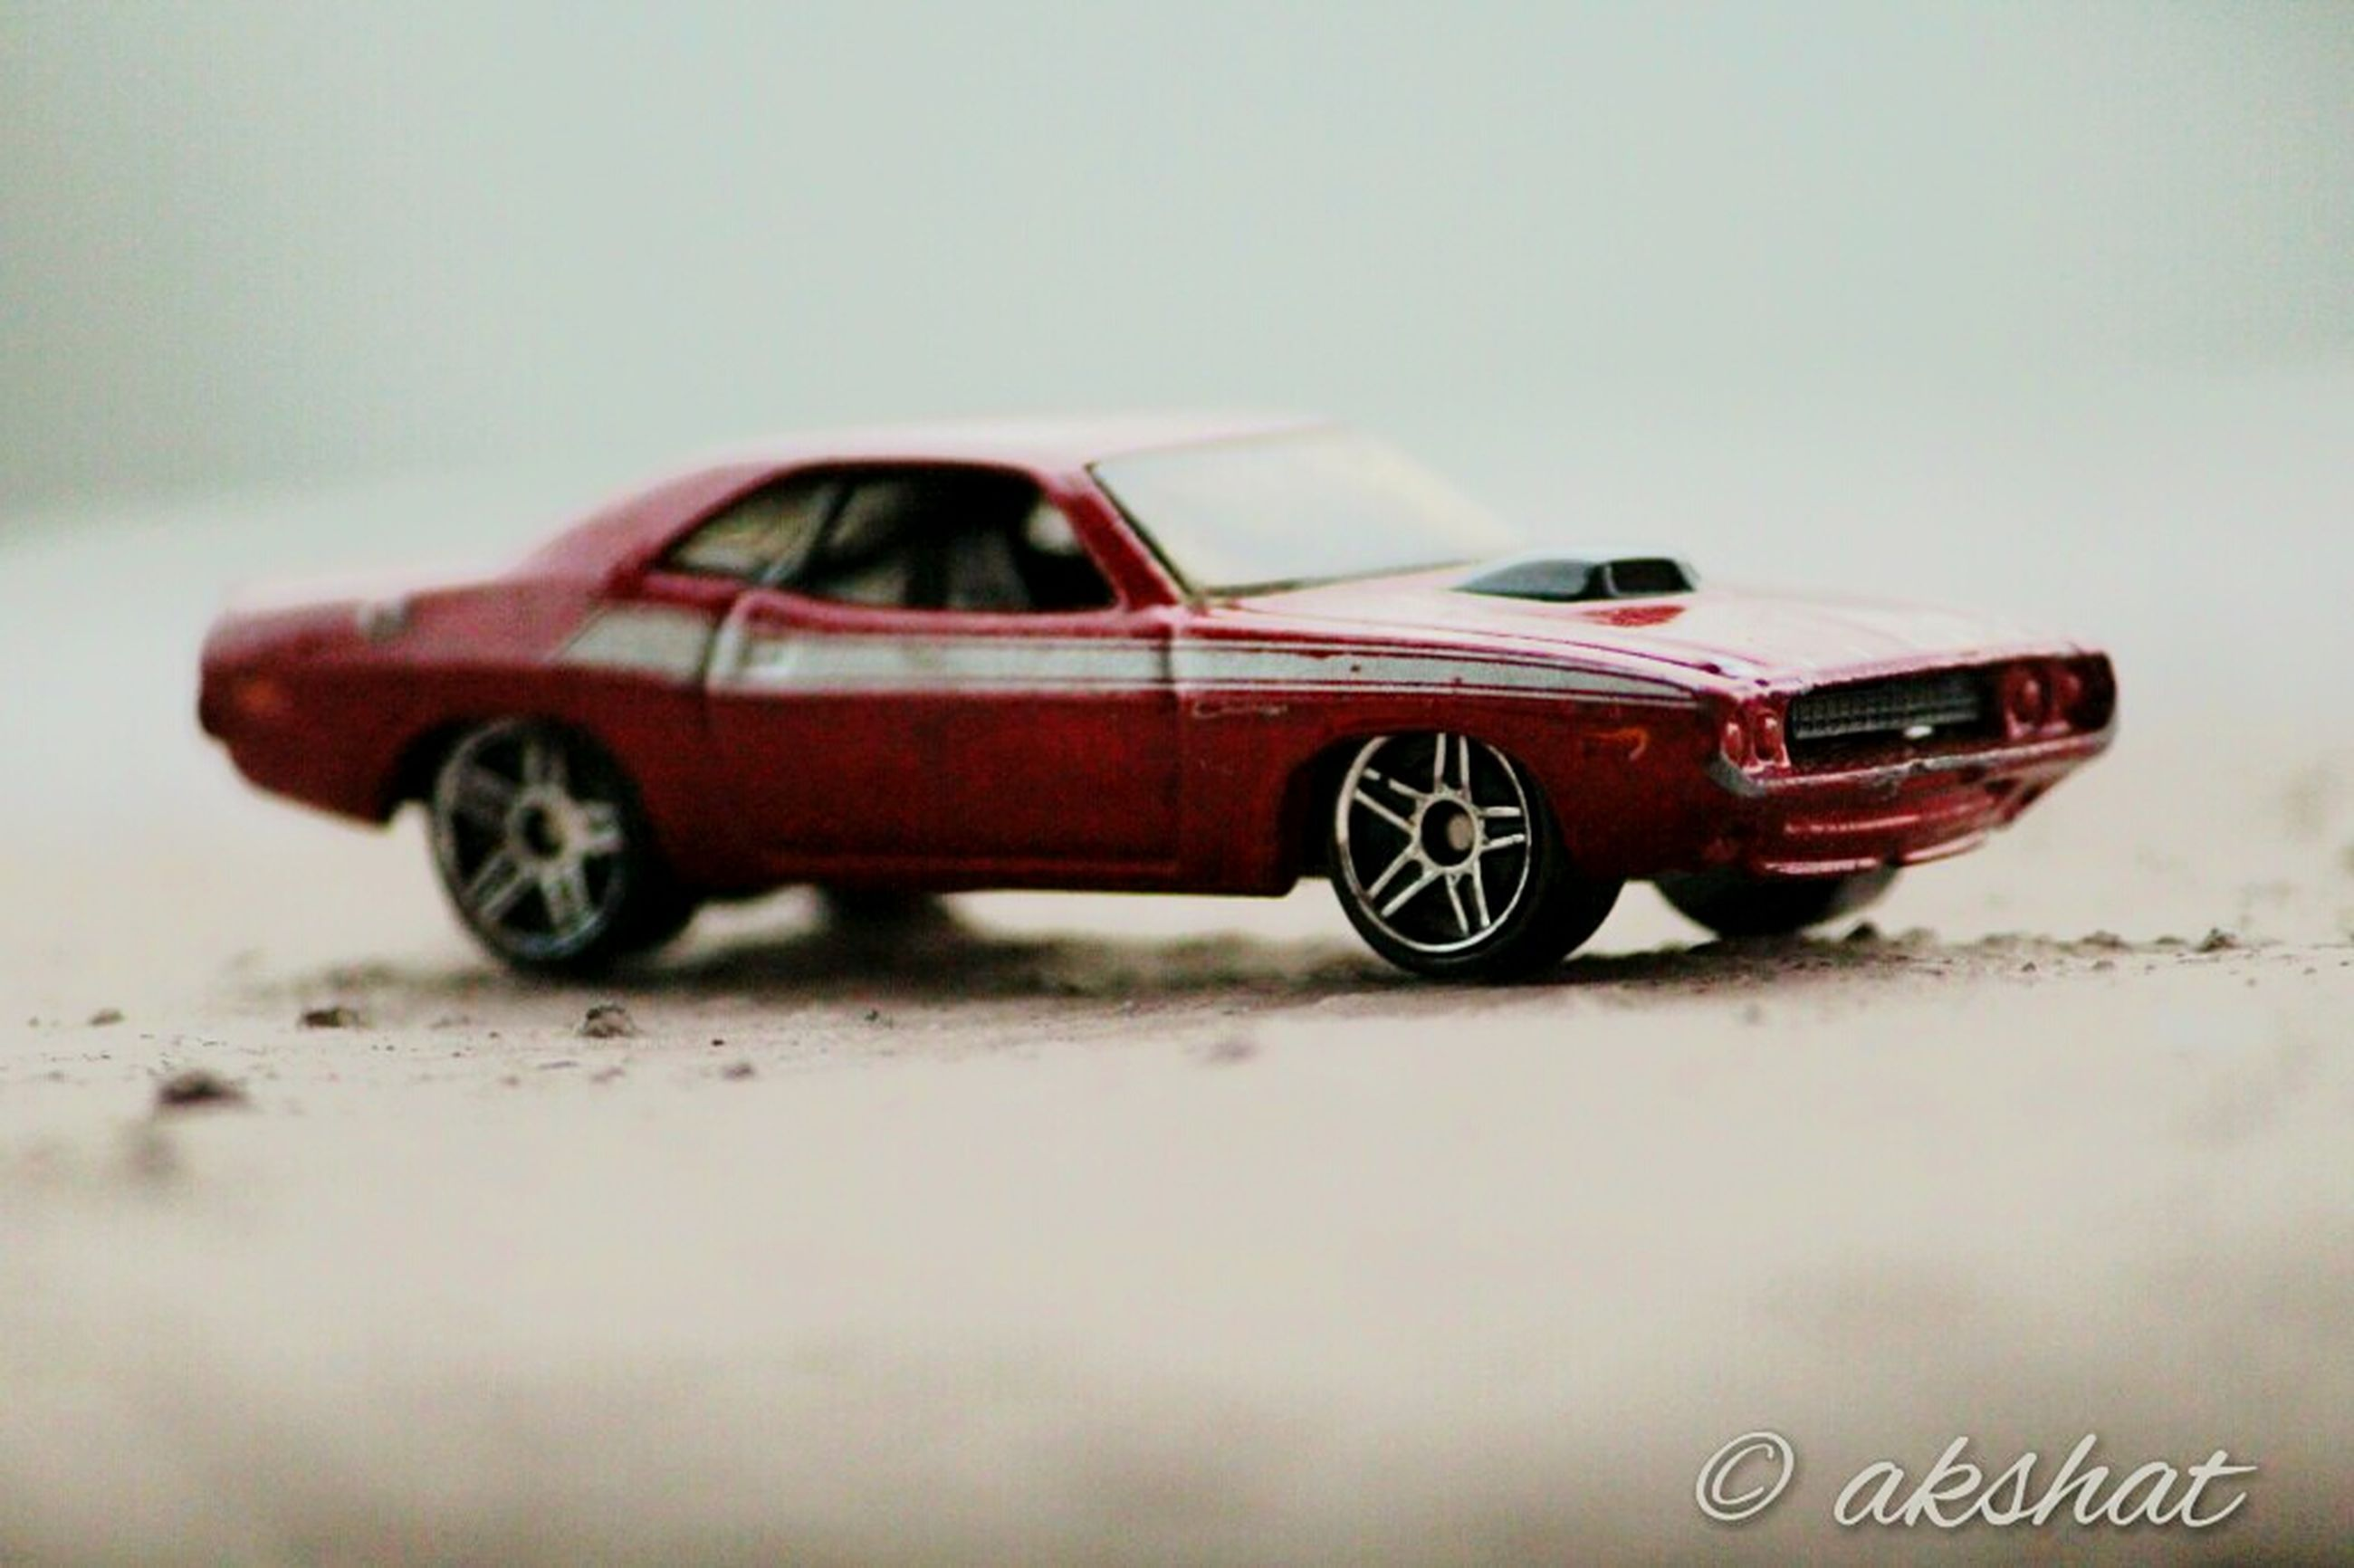 transportation, close-up, land vehicle, car, mode of transport, selective focus, red, copy space, focus on foreground, no people, single object, day, outdoors, abandoned, still life, old, toy, part of, obsolete, road